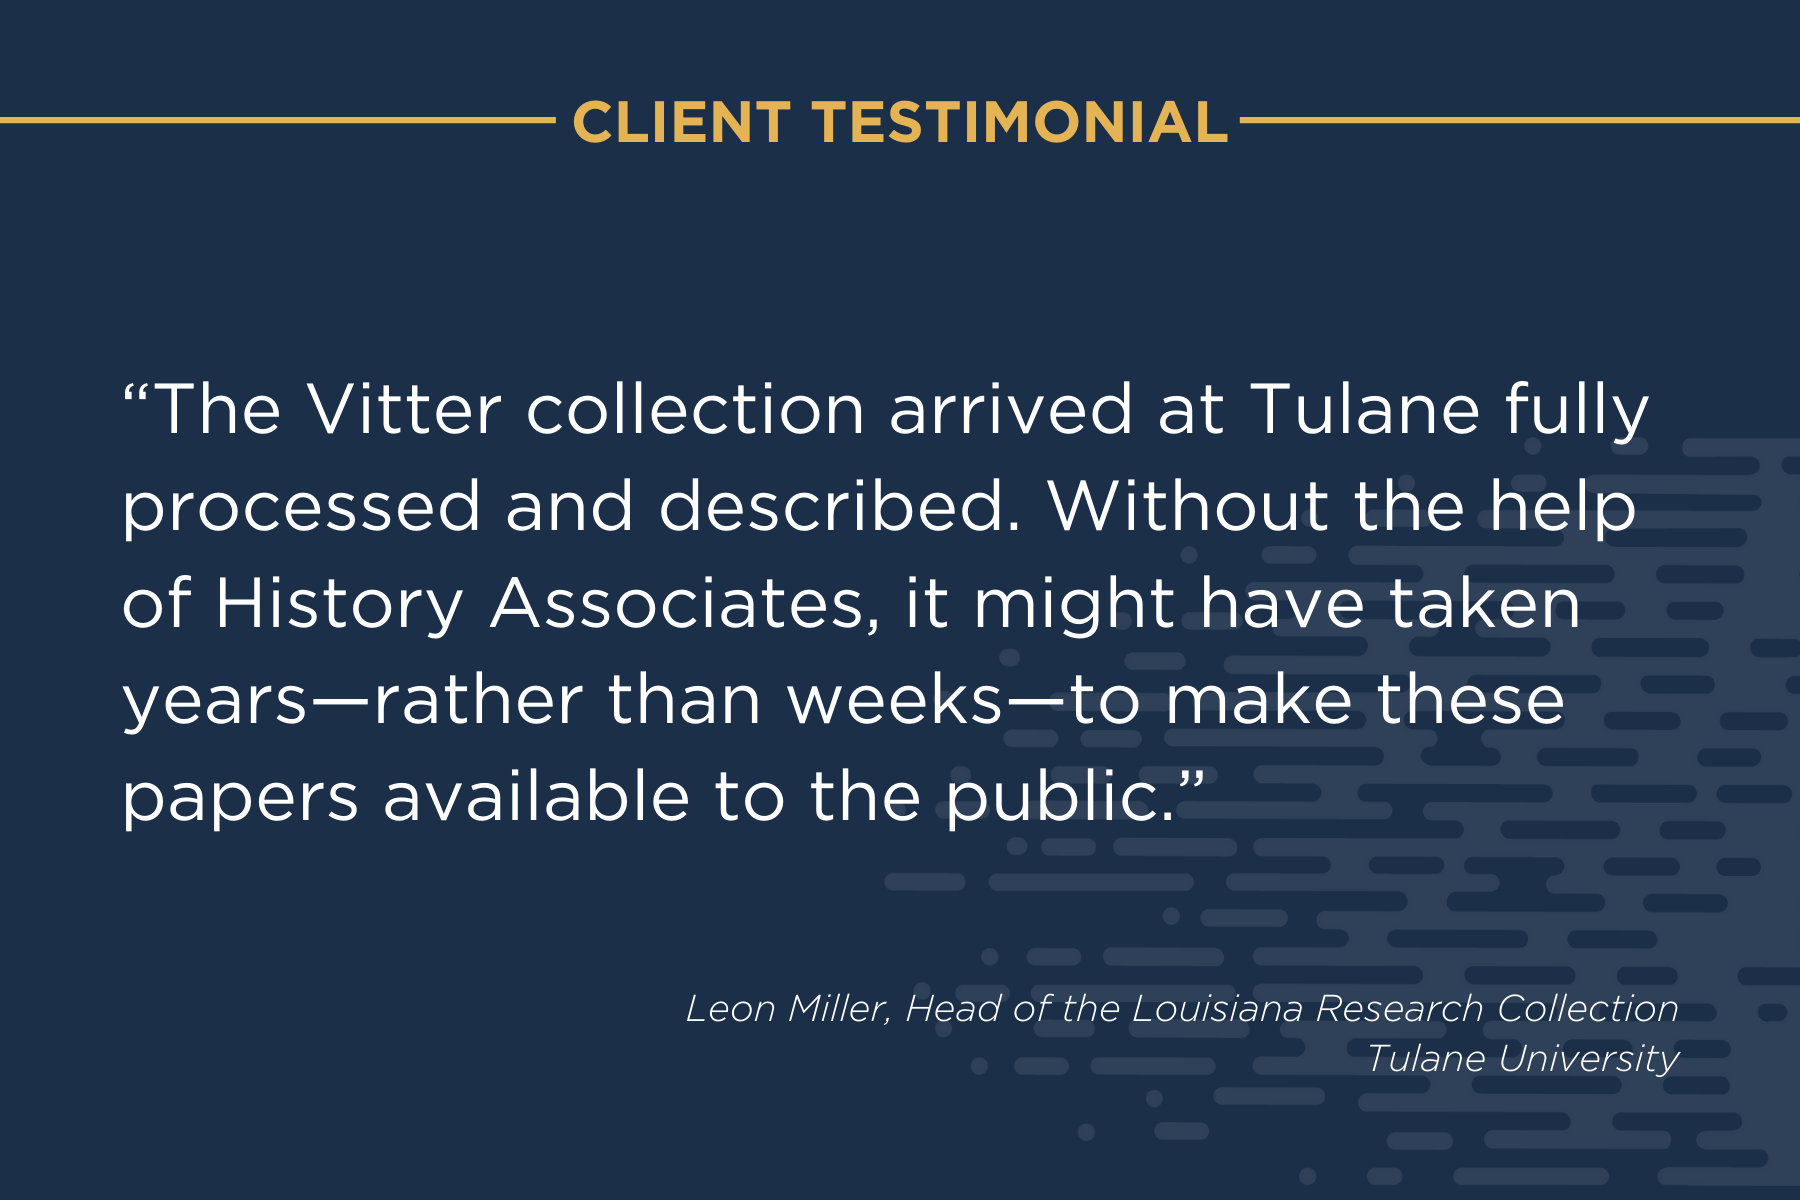 """client testimonial that reads """"The Vitter collection arrived at Tulane fully processed and described. Without the help of History Associates, it might have taken years-rather than weeks-to make these papers accessible to the public."""" Leon Miller, Head of the Louisiana Research Collection, Tulane University"""